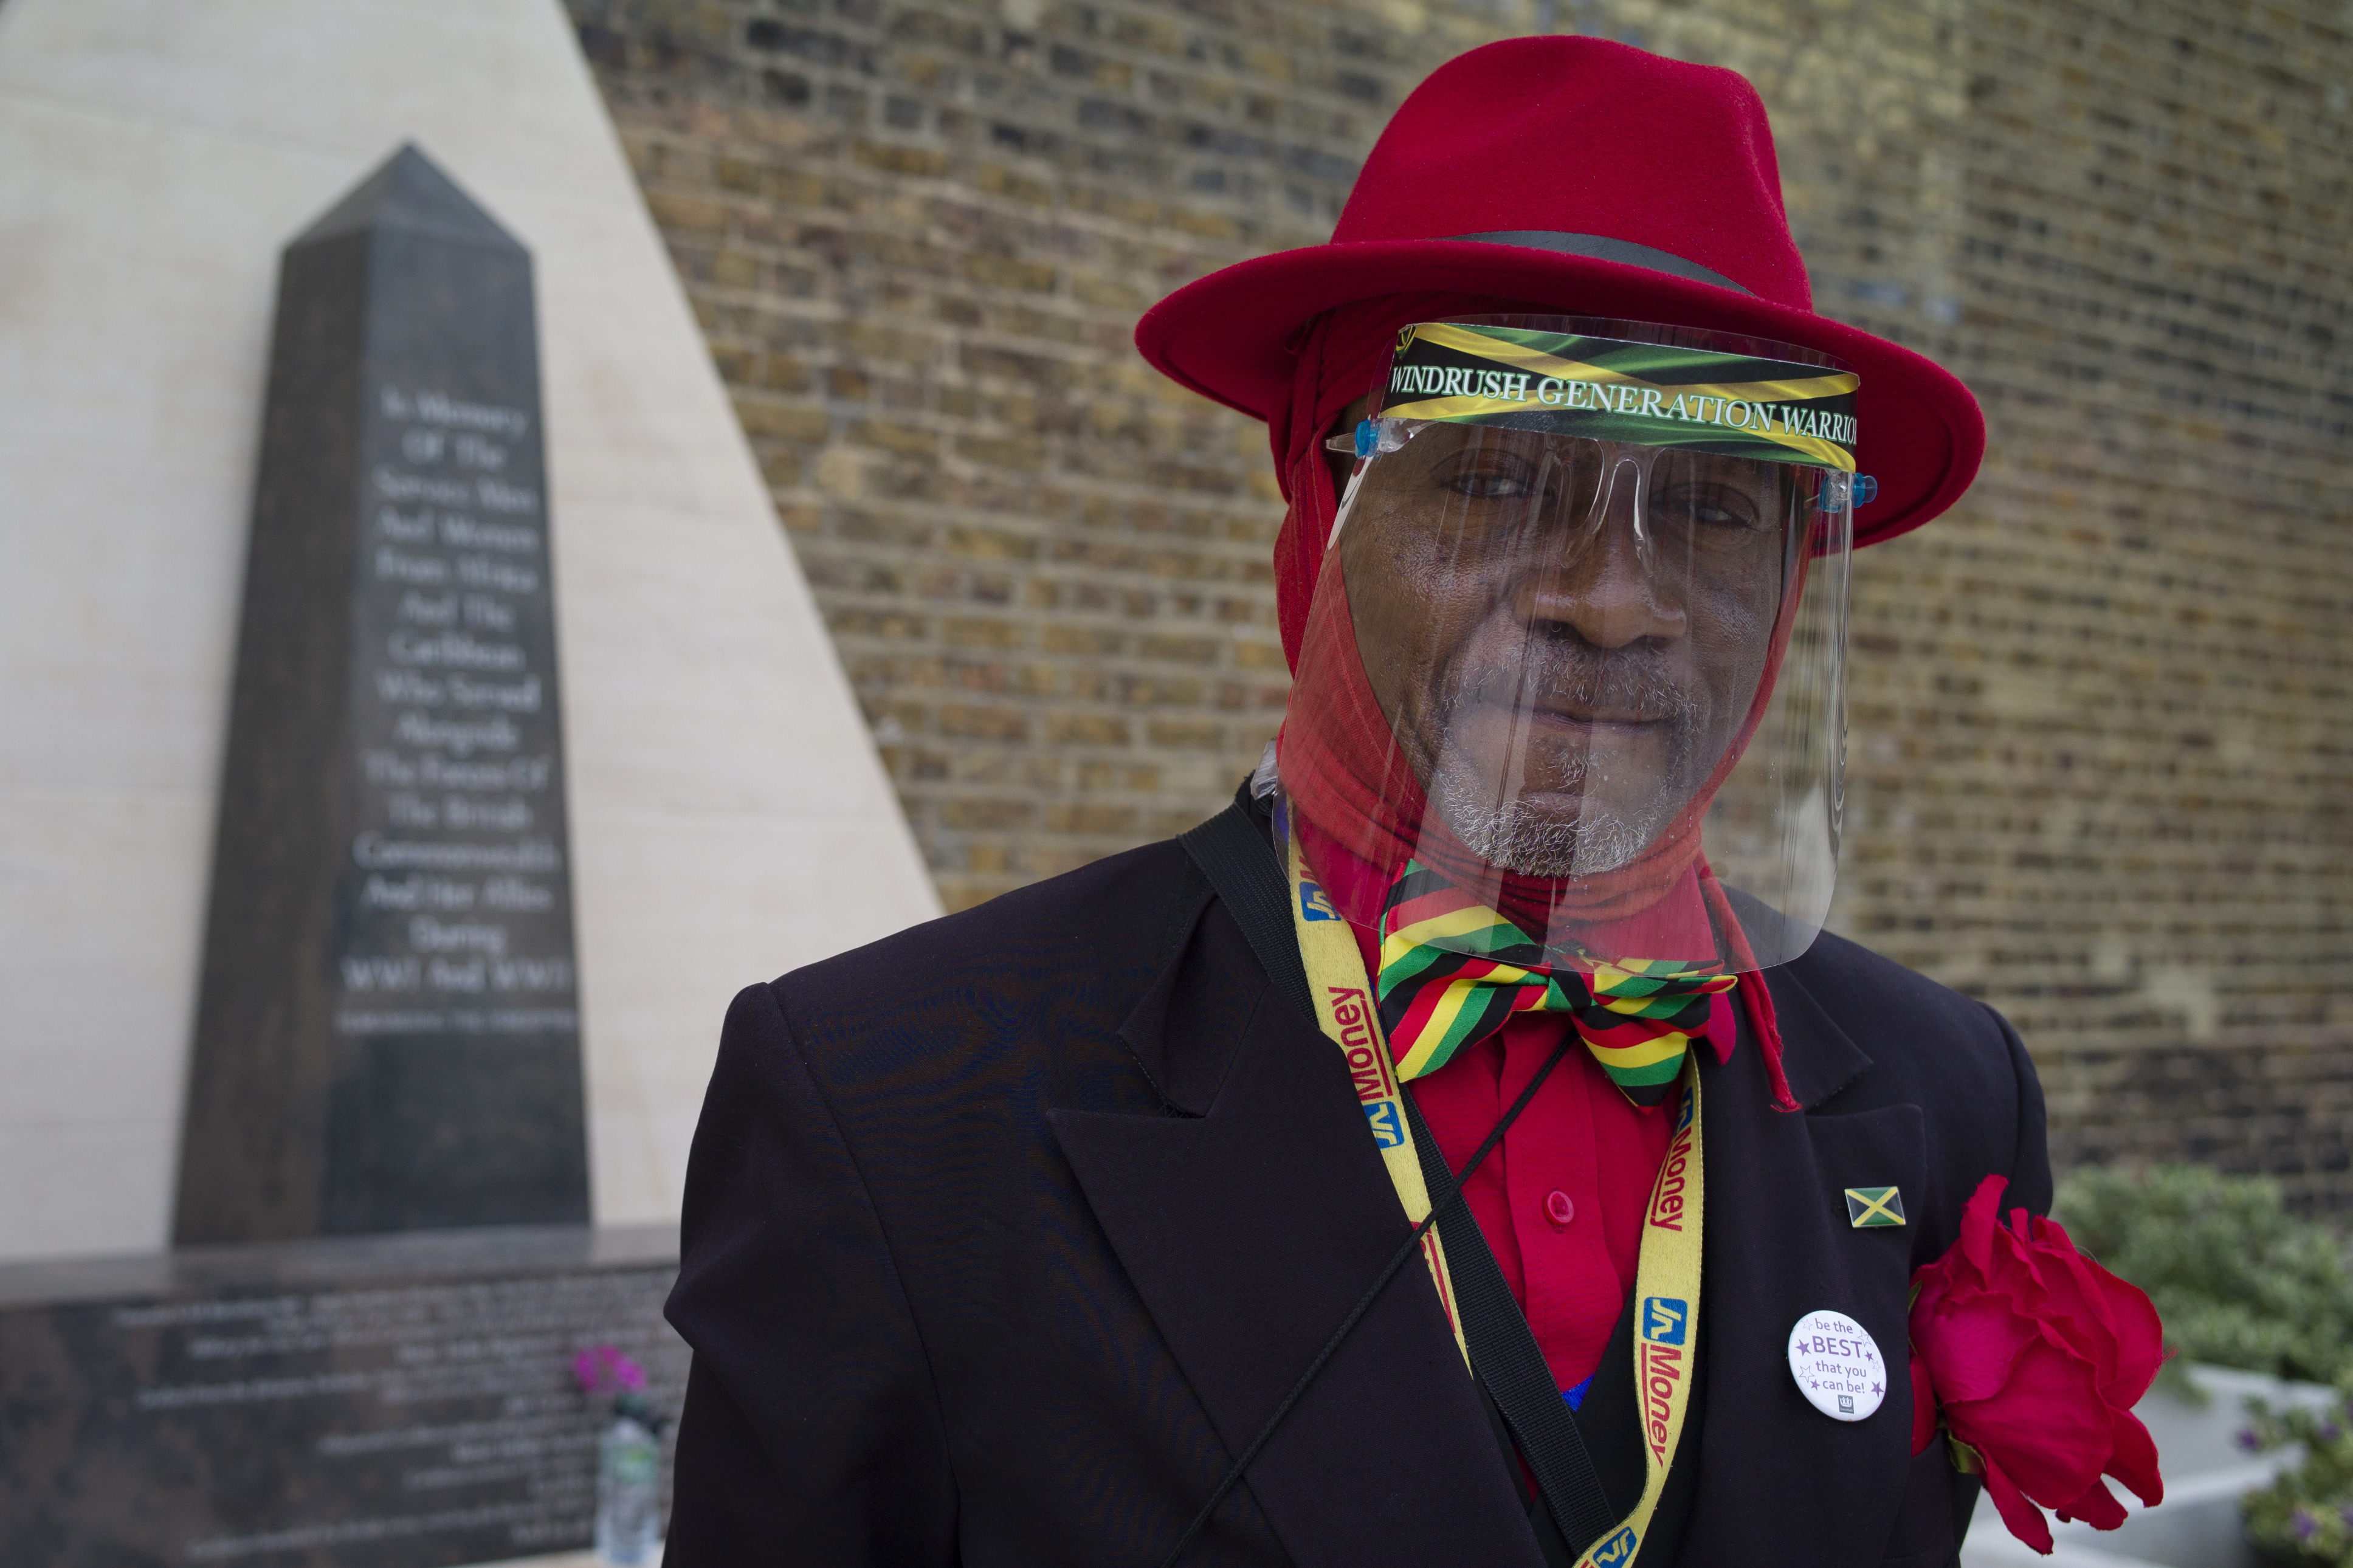 <p>LONDON, ENGLAND - JUNE 22: Elder Roger N M Mighton poses next to the memorial honoring the two million African and Caribbean military servicemen and women who served in World War I and World War II, during an event to mark Windrush Day in Windrush Square on June 22, 2021 in London, England. Windrush Day 2021 marks the 73rd anniversary of the arrival of MV Empire Windrush at the Port of Tilbury, near London, on 22 June 1948. The ship carried hundreds of people from the Caribbean who had been encouraged by the UK to come and work in the public services sector and is a seminal moment in Britain's history coming to represent the country's rich diversity. (Photo by Dan Kitwood/Getty Images)</p>